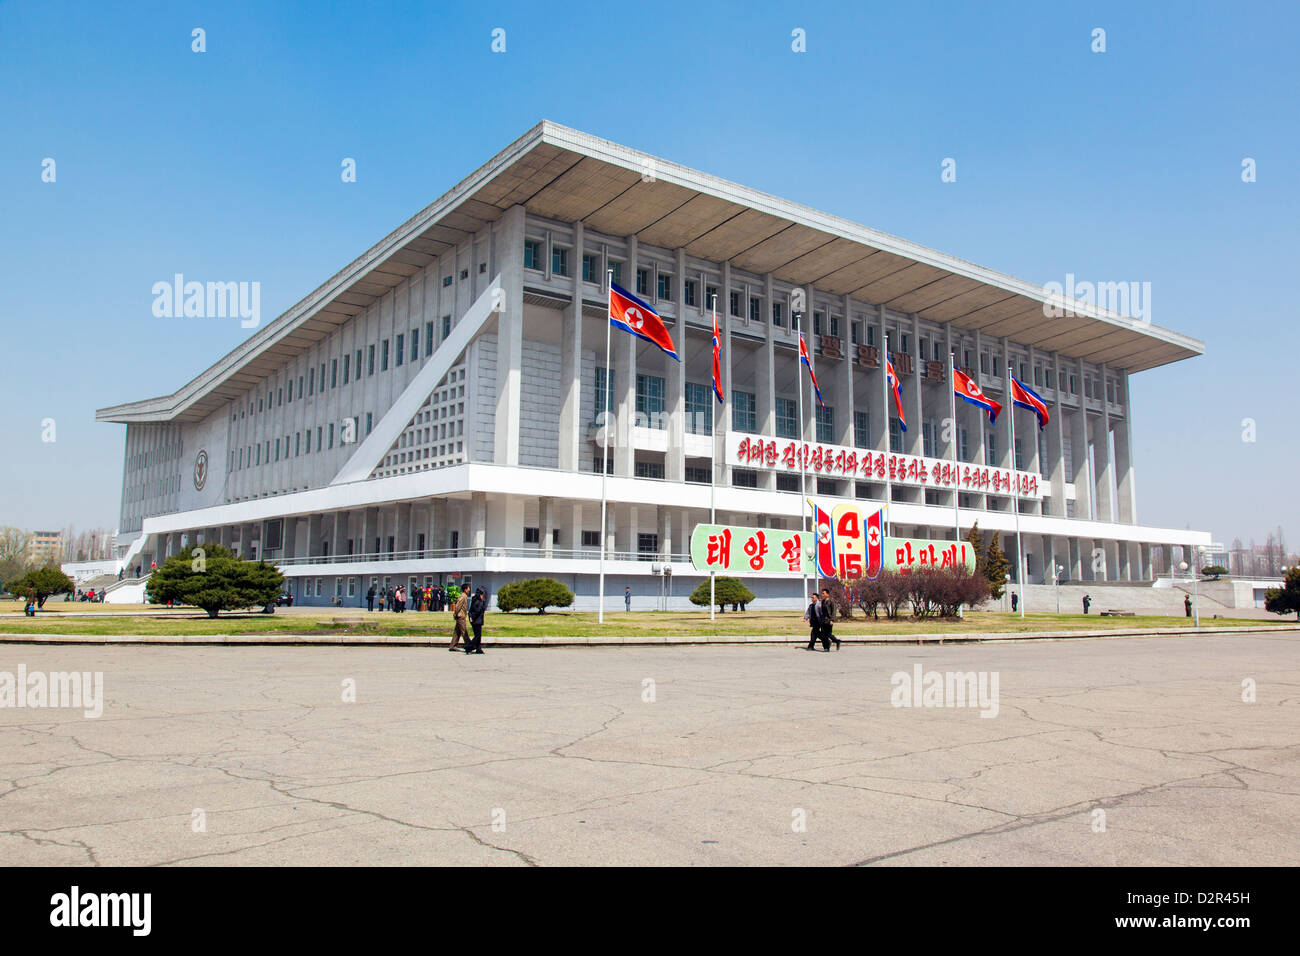 Indoor Sports Stadium, Pyongyang, Democratic People's Republic of Korea (DPRK), North Korea, Asia - Stock Image